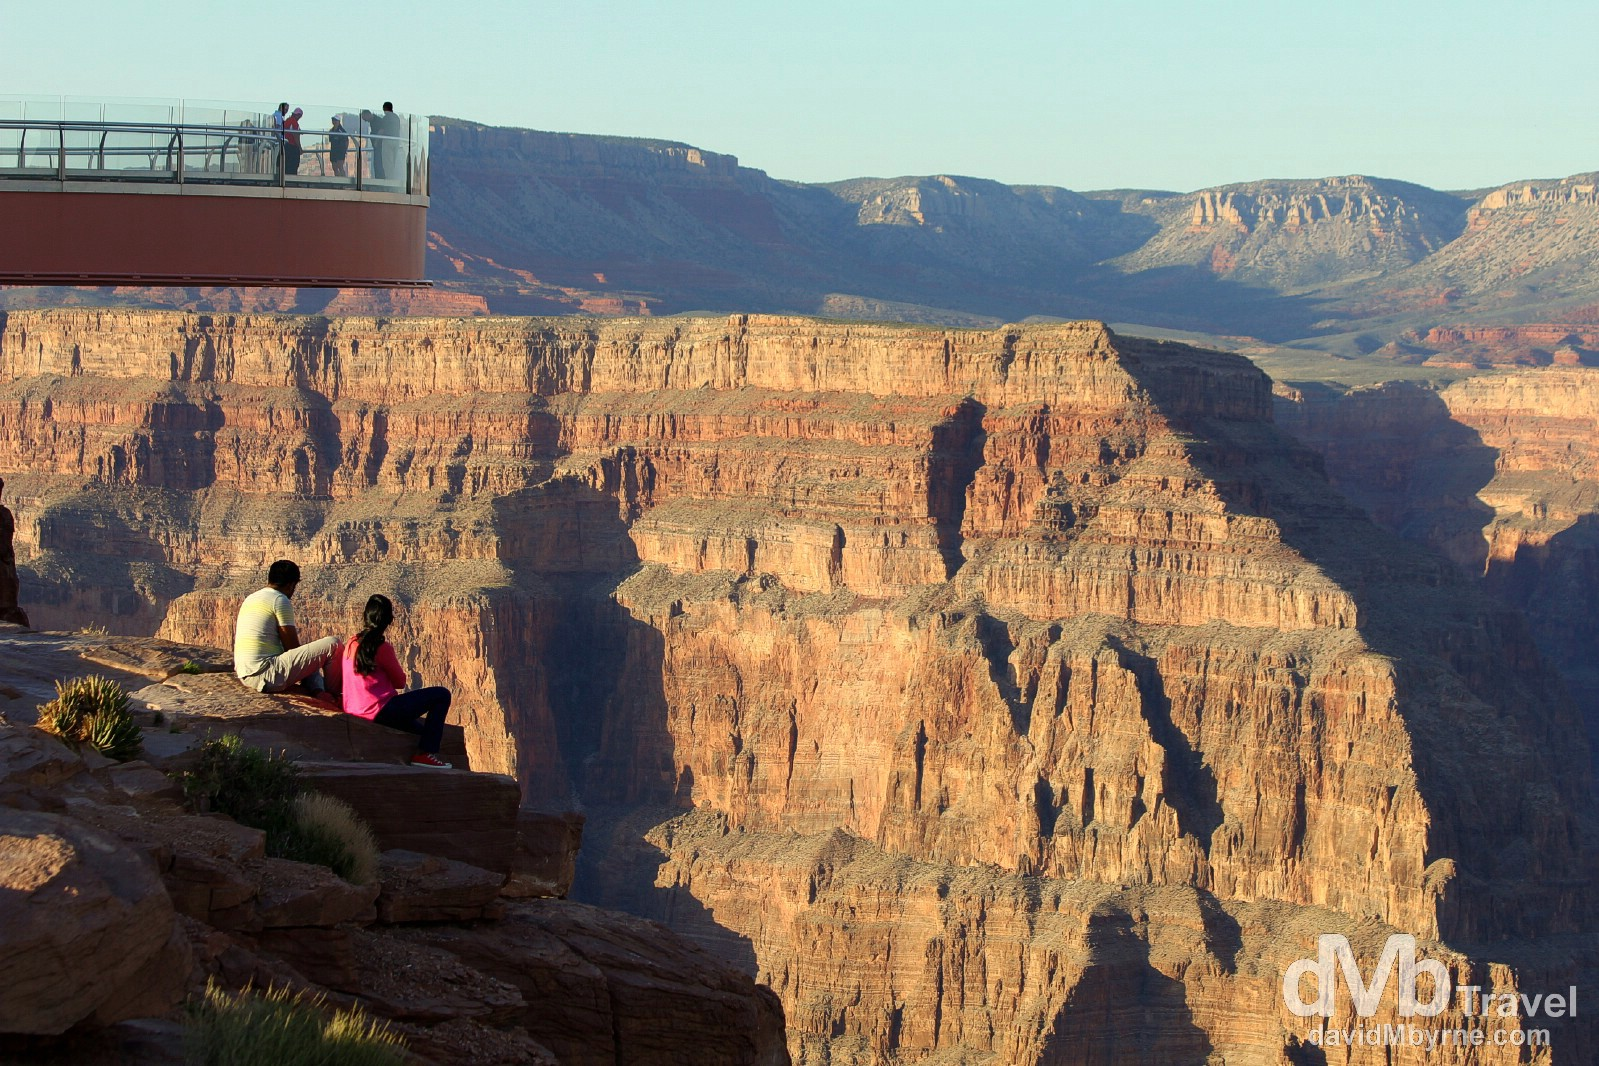 The Grand Canyon Skywalk at Eagle Point, The Grand Canyon West, Arizona, USA. April 6th 2013.